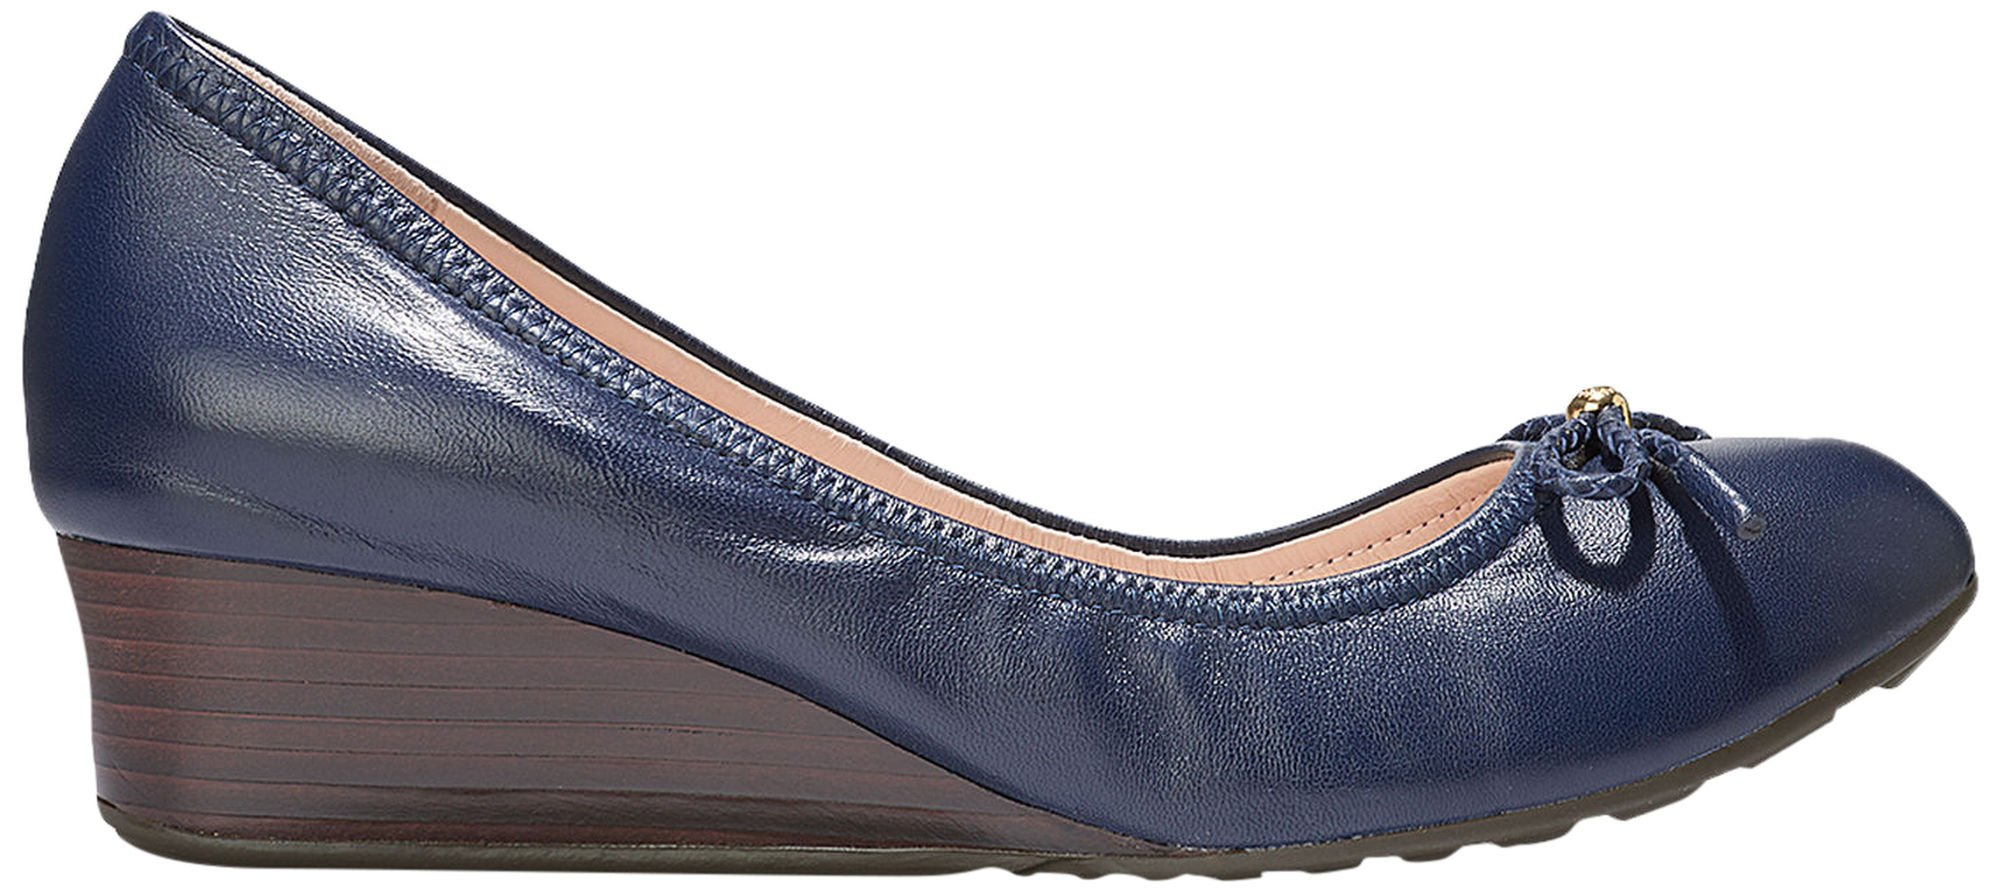 Cole Haan Womens Tali Grand Lace Wedge 40mm 9 Blazer Blue Leather